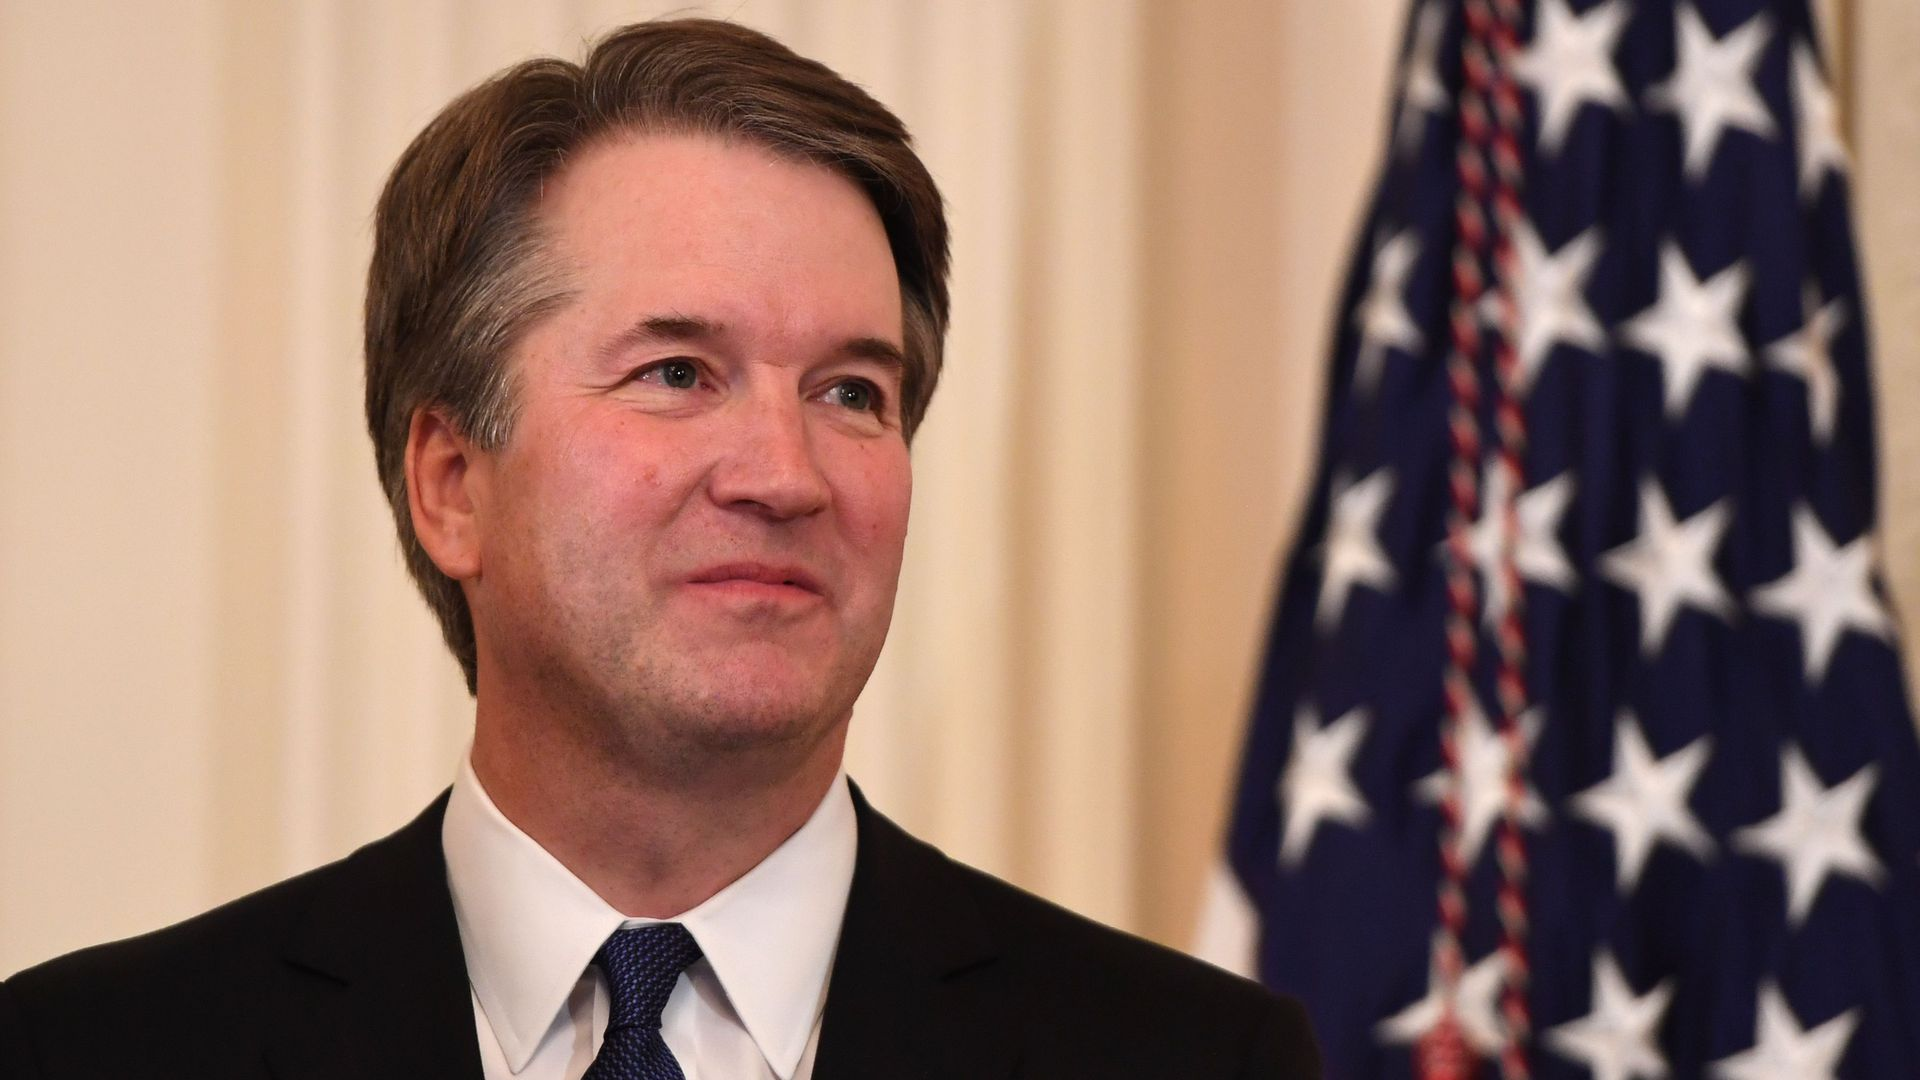 Judge Brett Kavanaugh, President Trump's nominee to the Supreme Court. Photo: Saul Loeb/AFP/Getty Images